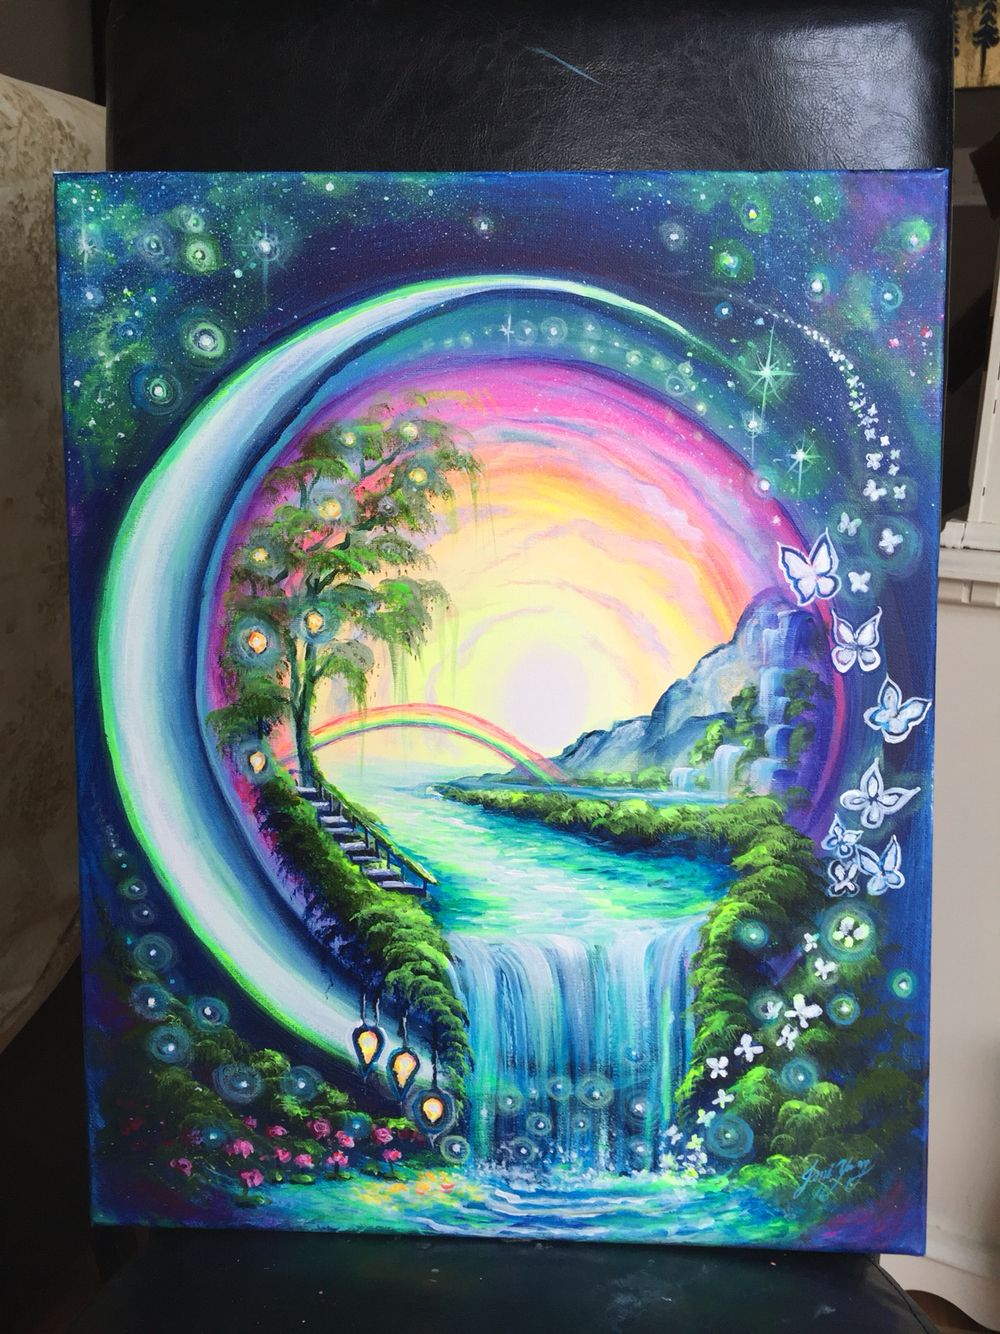 jpg free library Unique painting idea a. Drawing rainbows waterfall